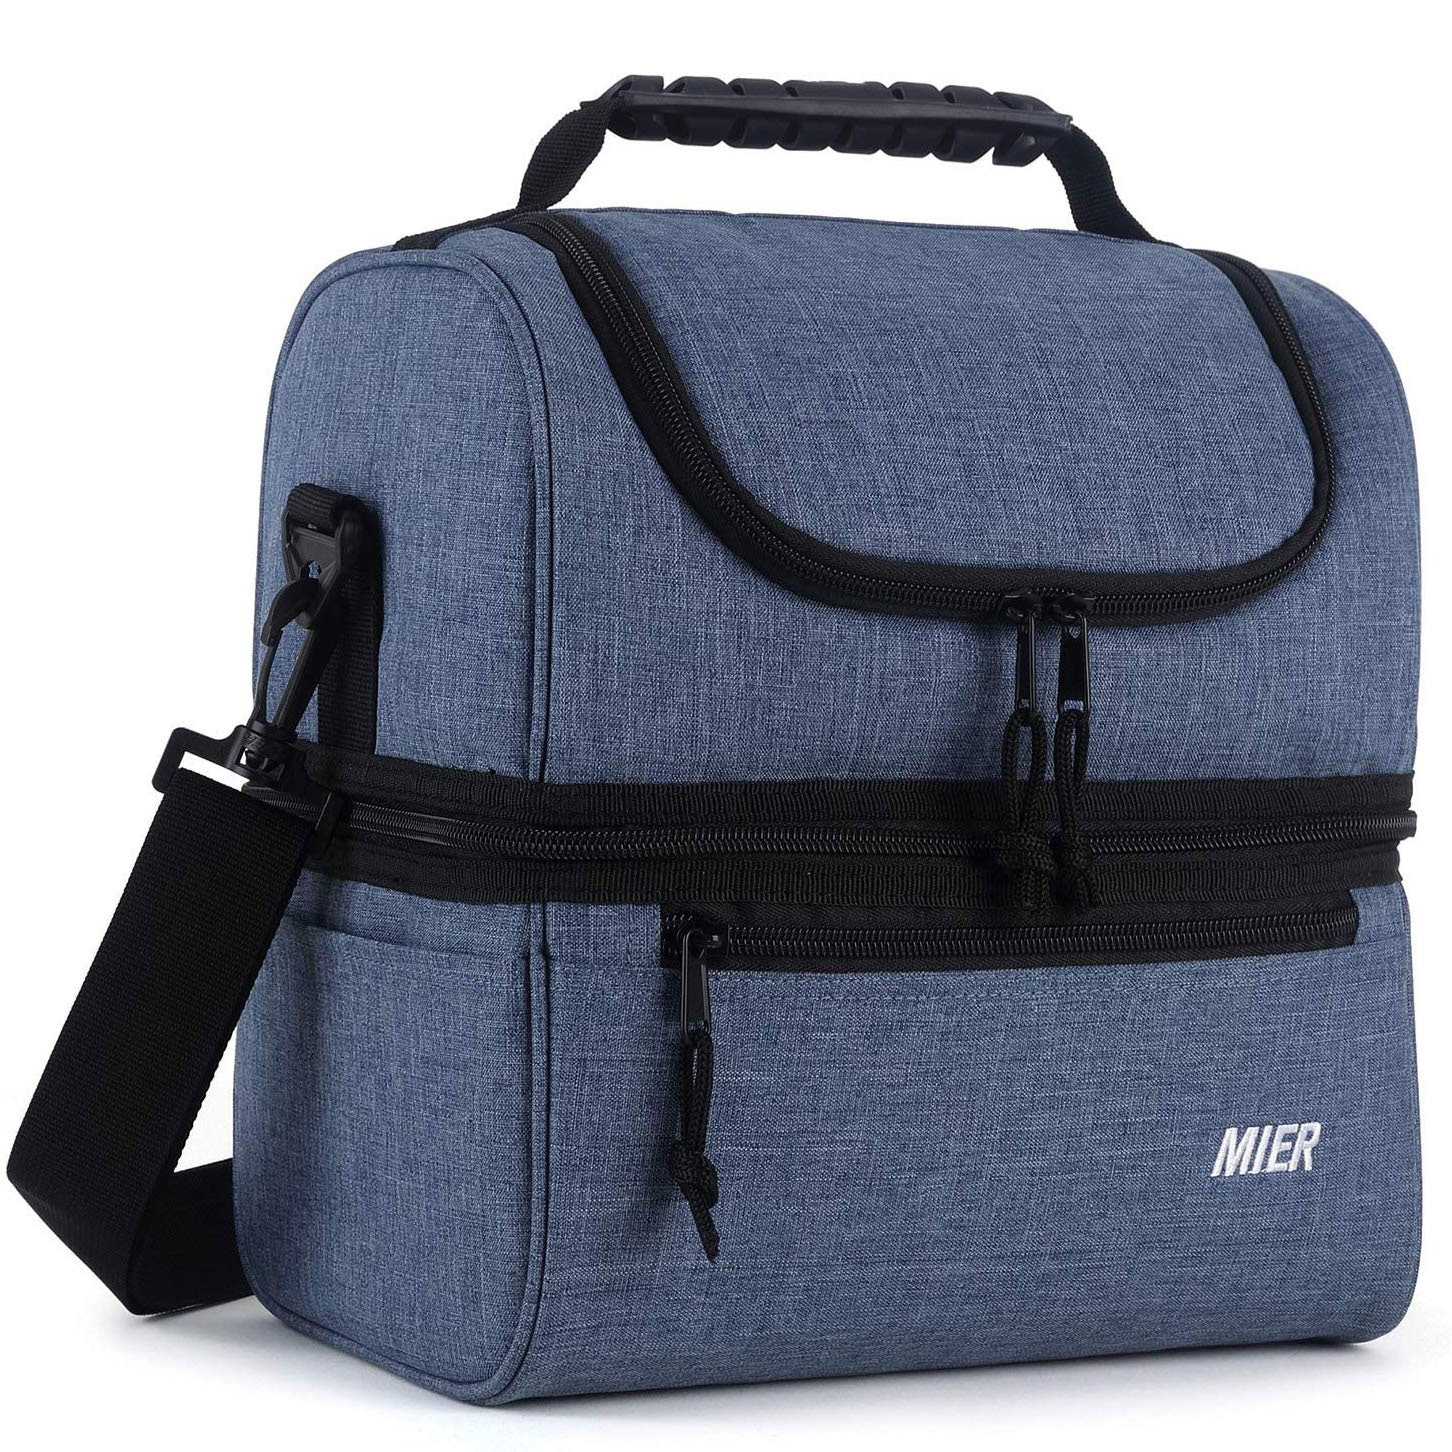 MIER Adult Insulated Lunch Bag Large Cooler Tote Bag